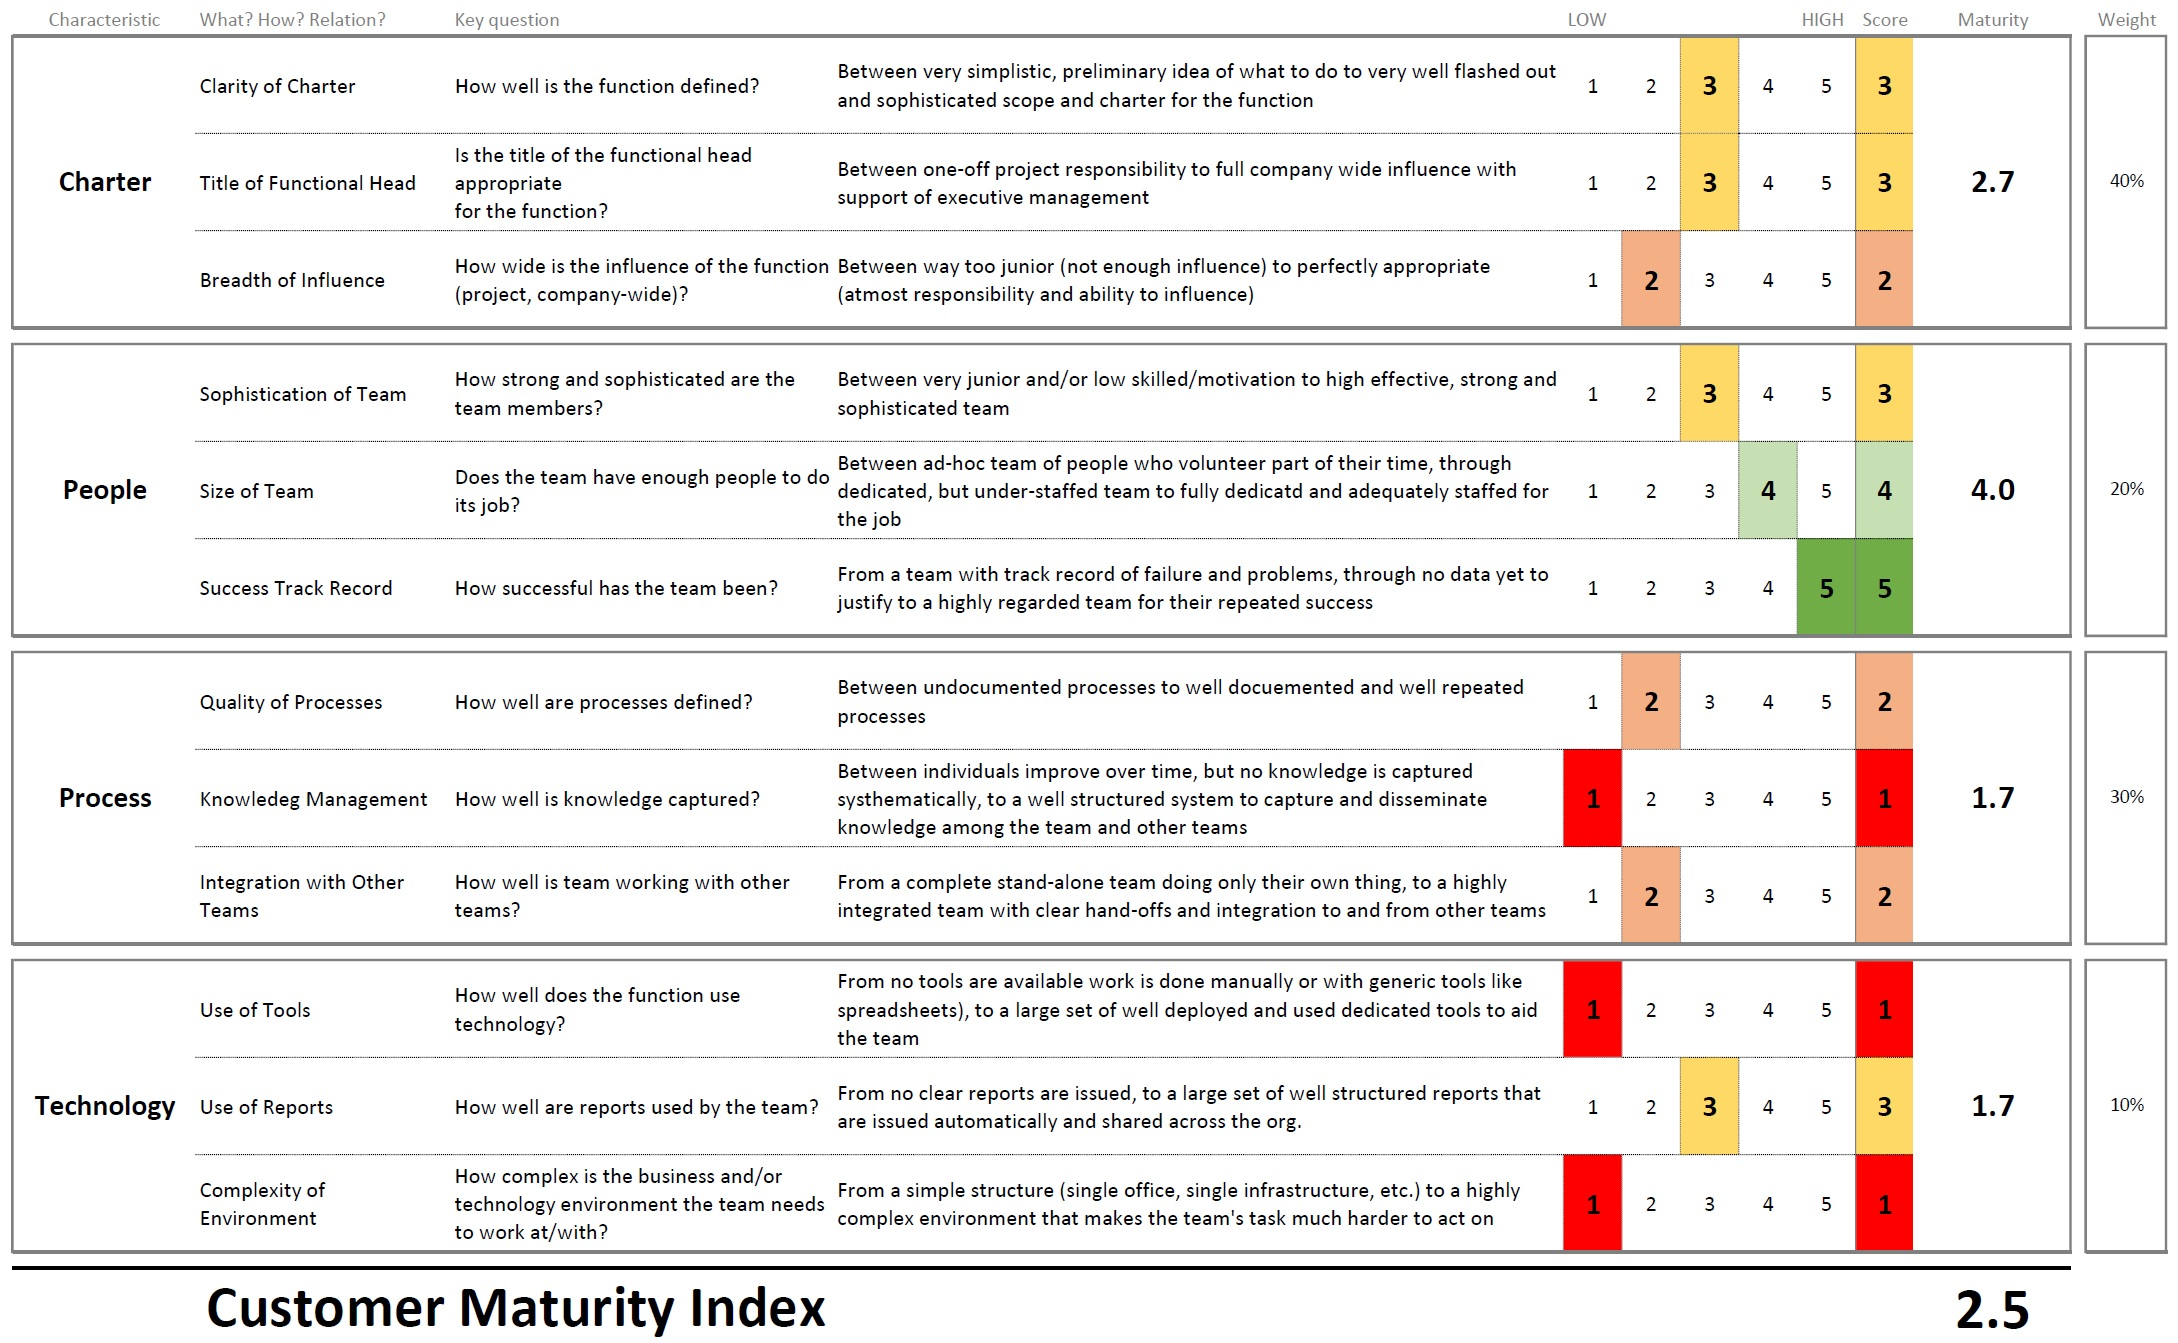 Customer Maturity Index